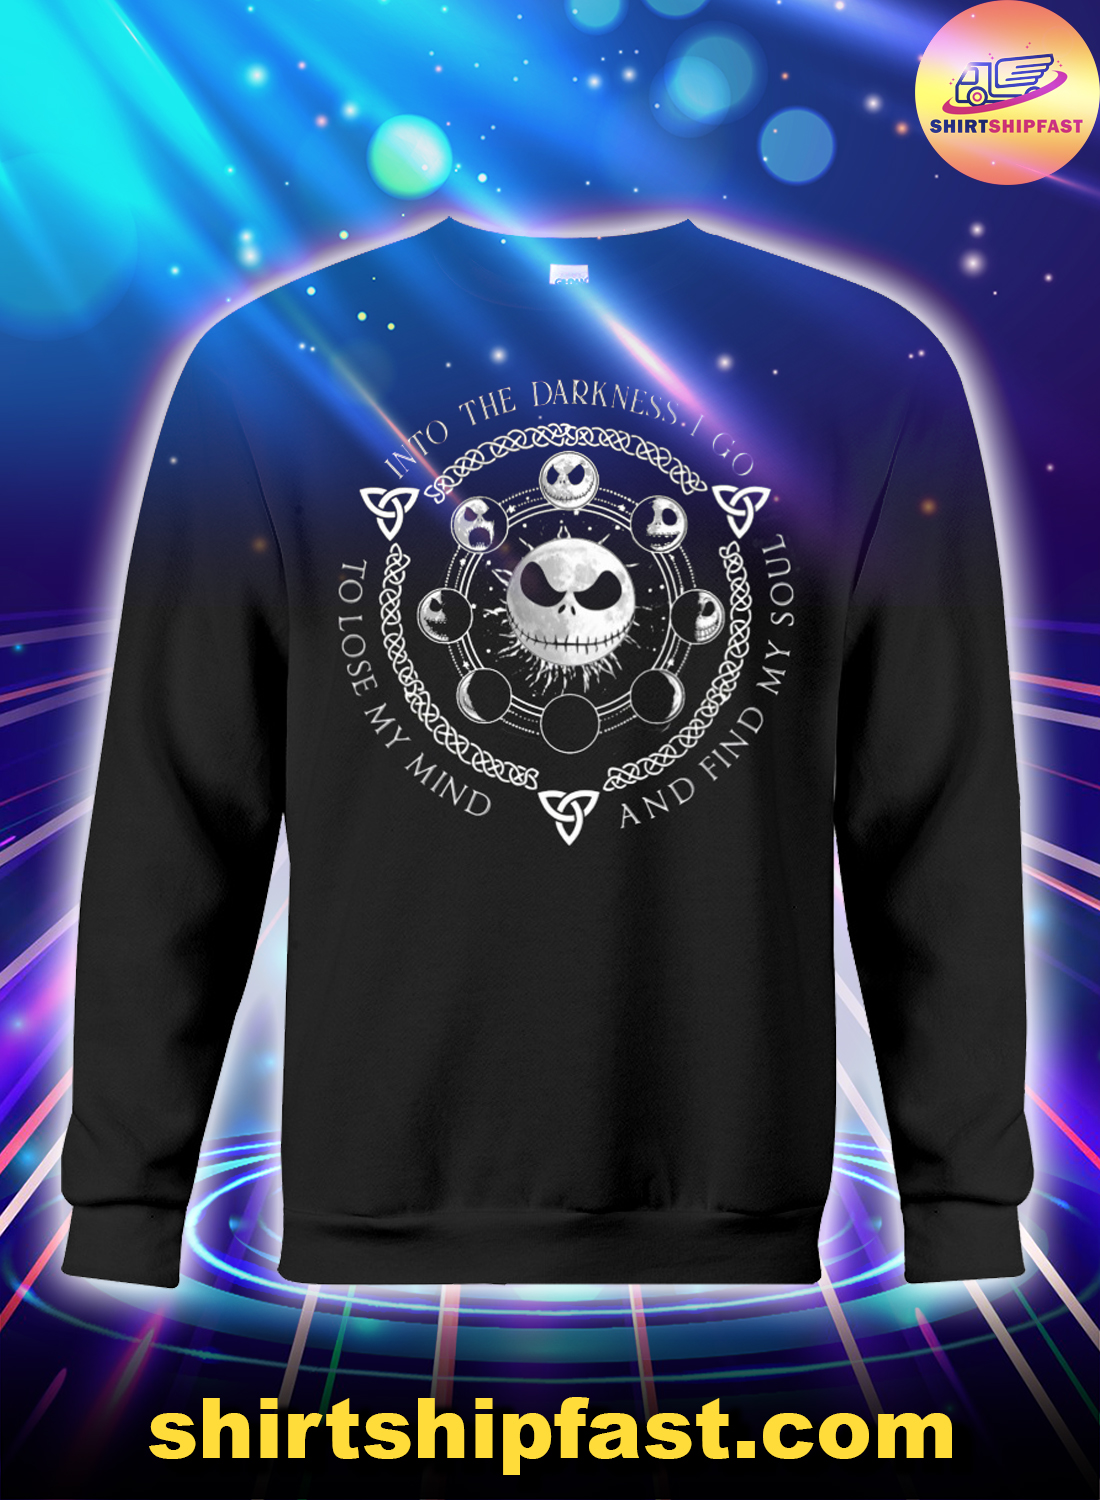 Jack Skellington Into the darkness I go to lose my mind and find my soul sweatshirt